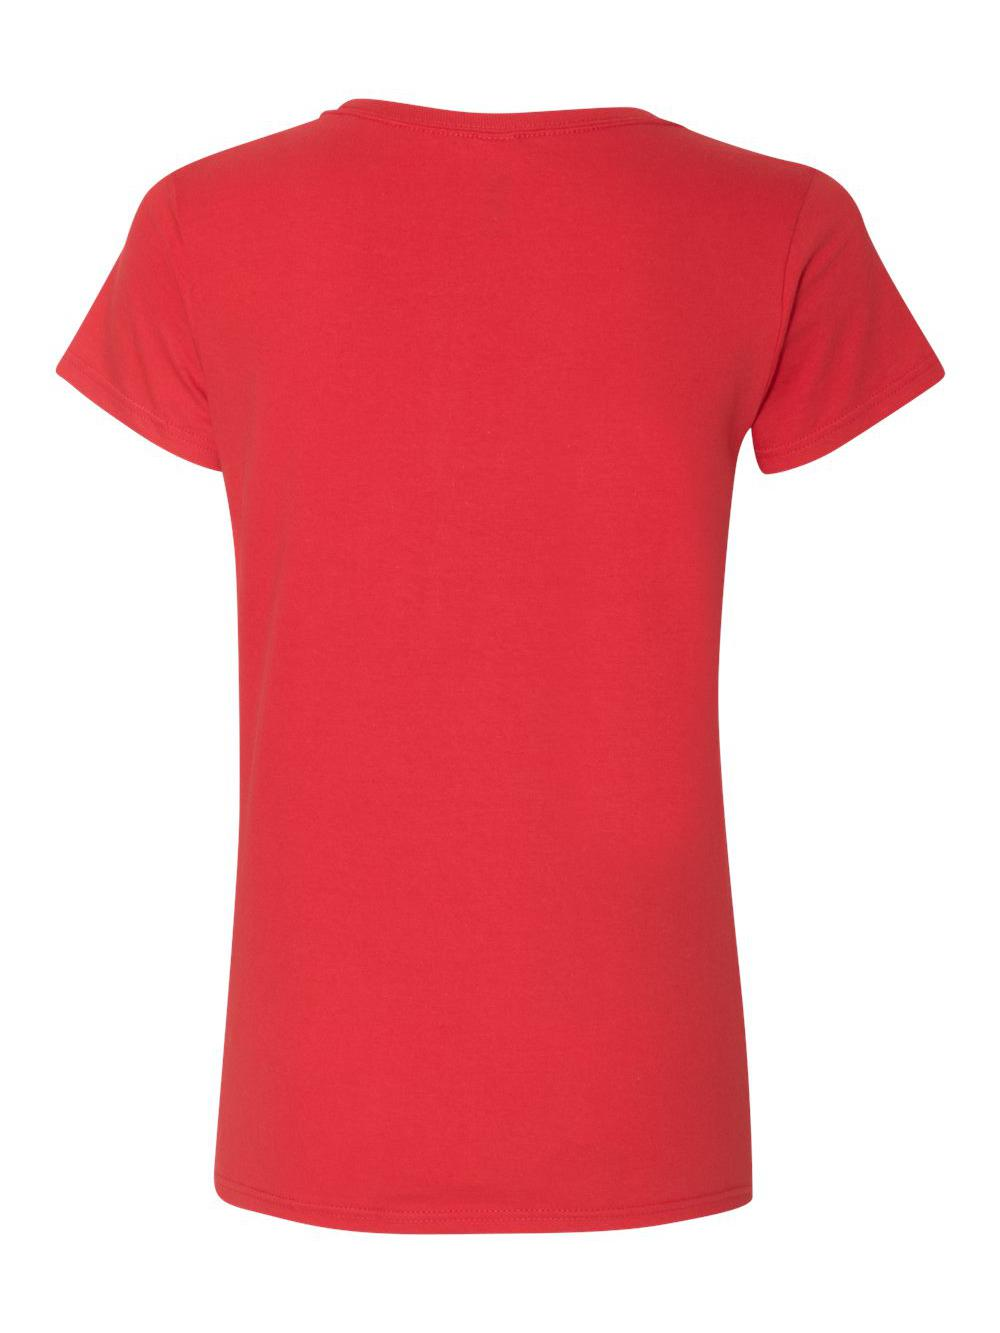 Gildan-Softstyle-Women-039-s-Deep-Scoopneck-T-Shirt-64550L thumbnail 40